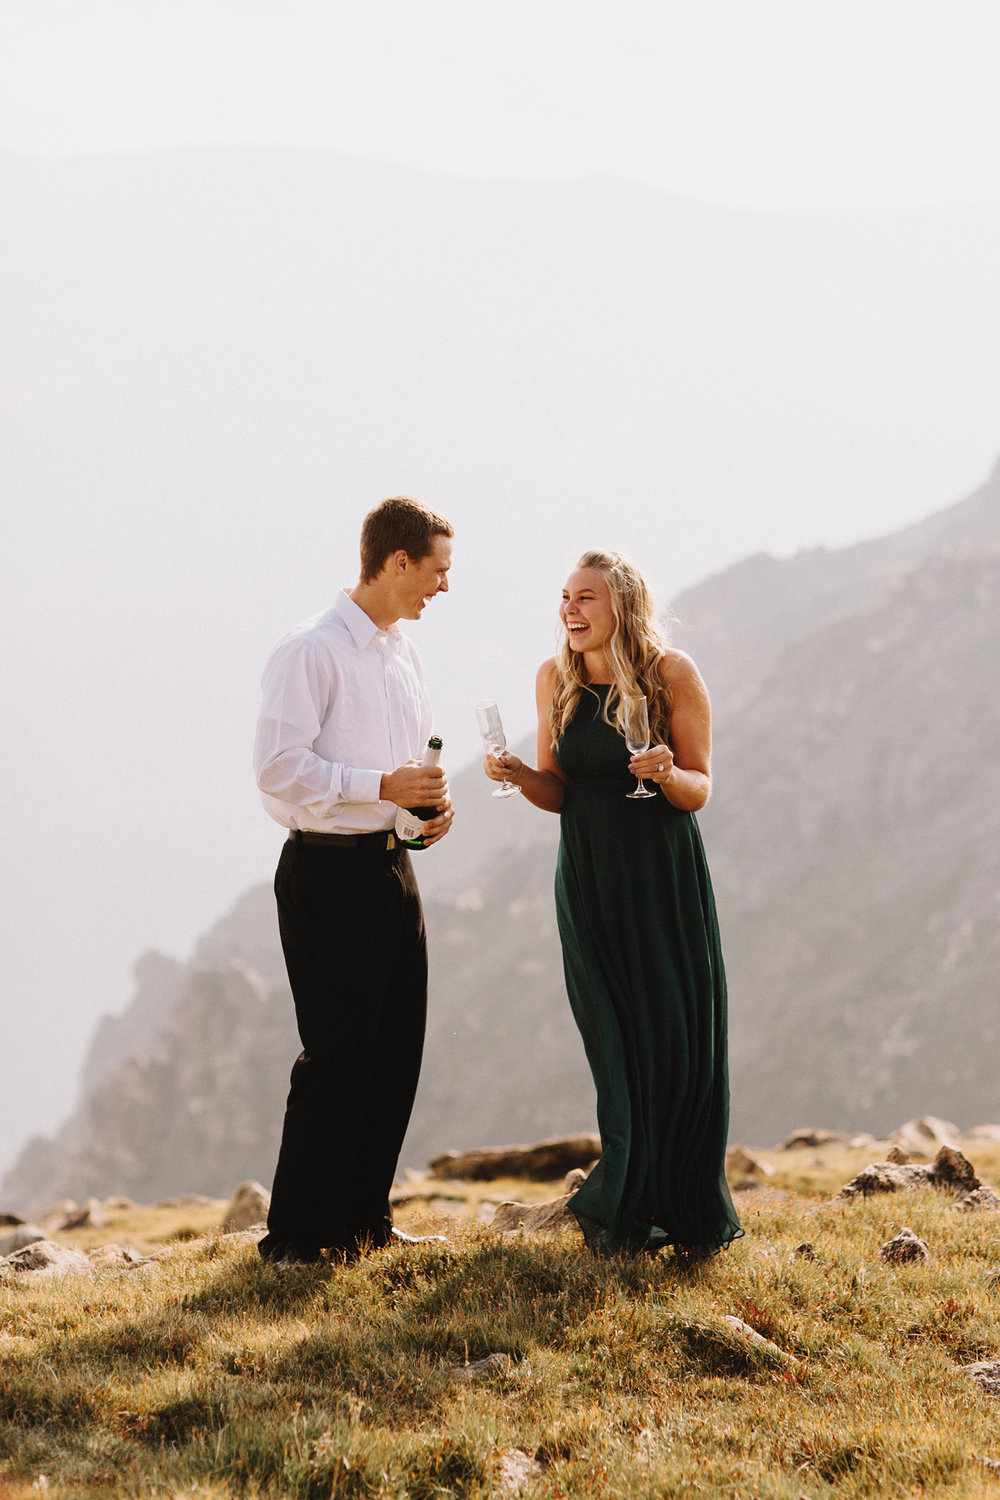 Rocky Mountain Engagement National Park Engaged Photos Wedding Elopement Portrait Mountains Trail Ridge Rd Peak Alpine Dress Lulus Rules Permit Photo Adventure Love Couples Destination Liz Osban photography Cheyenne Wyoming2.jpg